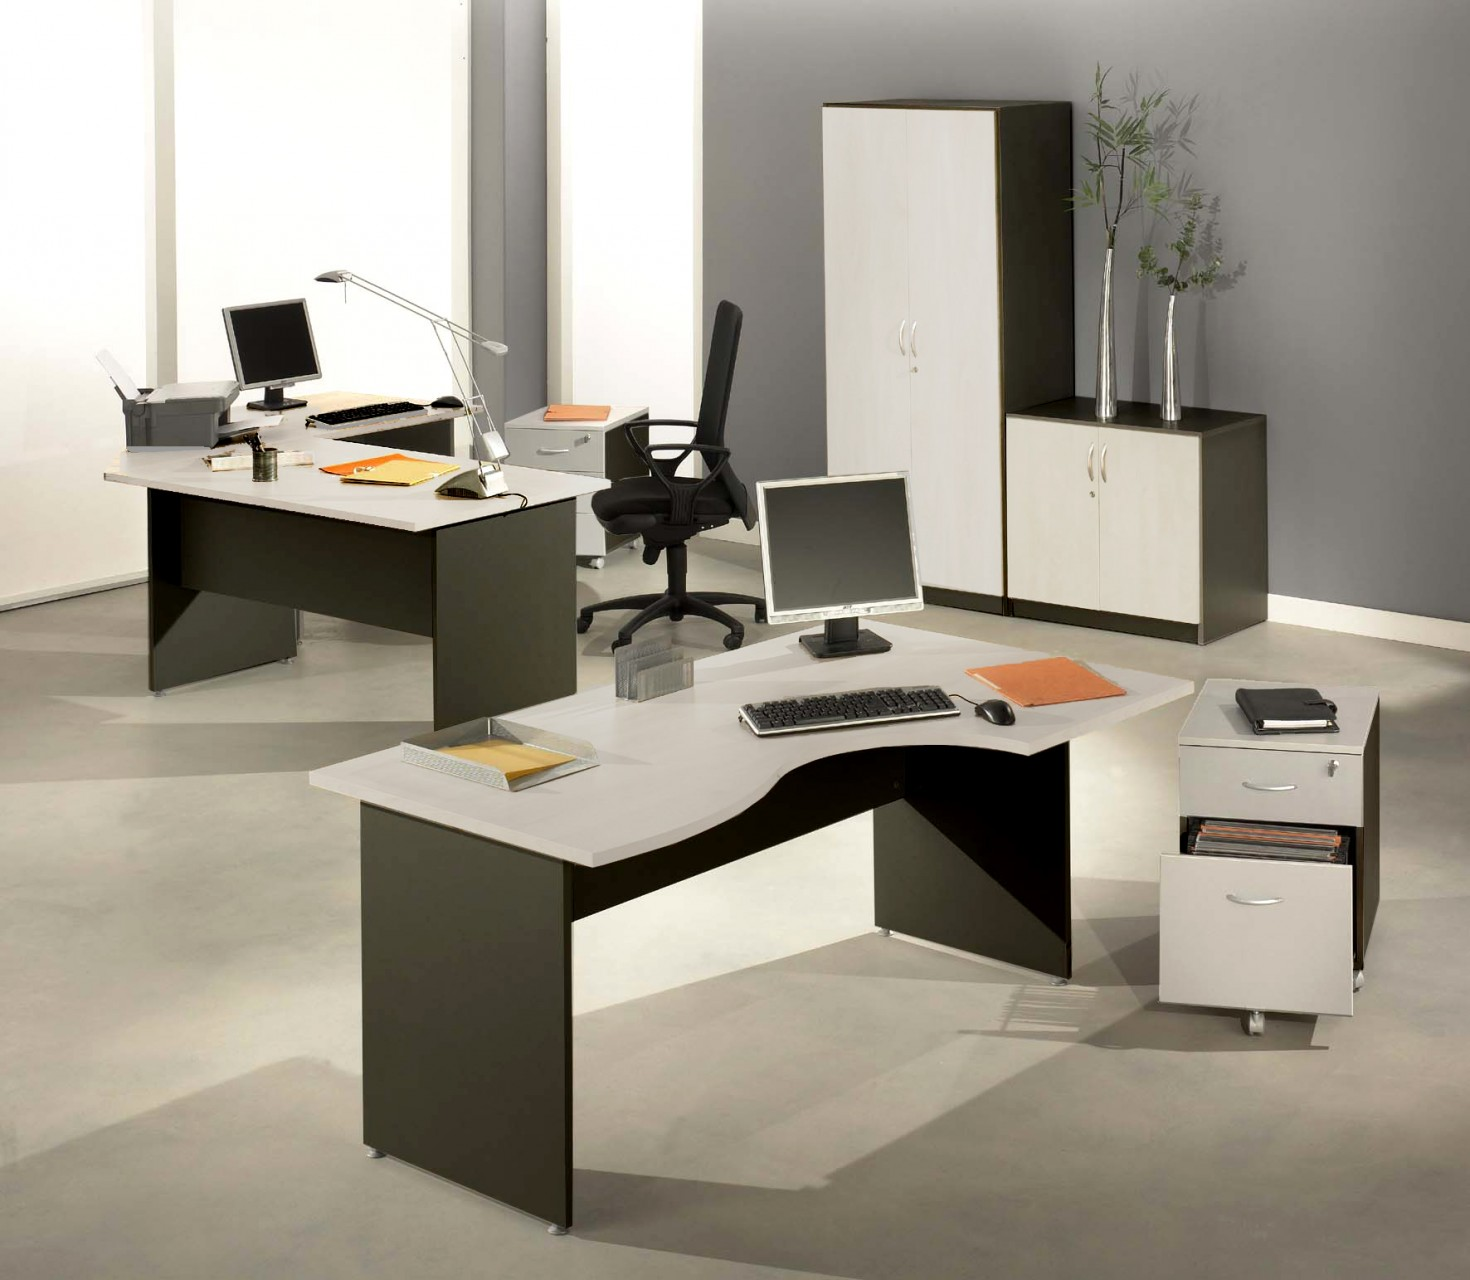 bureau droit modulaire winch bicolore achat bureaux droits 109 00. Black Bedroom Furniture Sets. Home Design Ideas